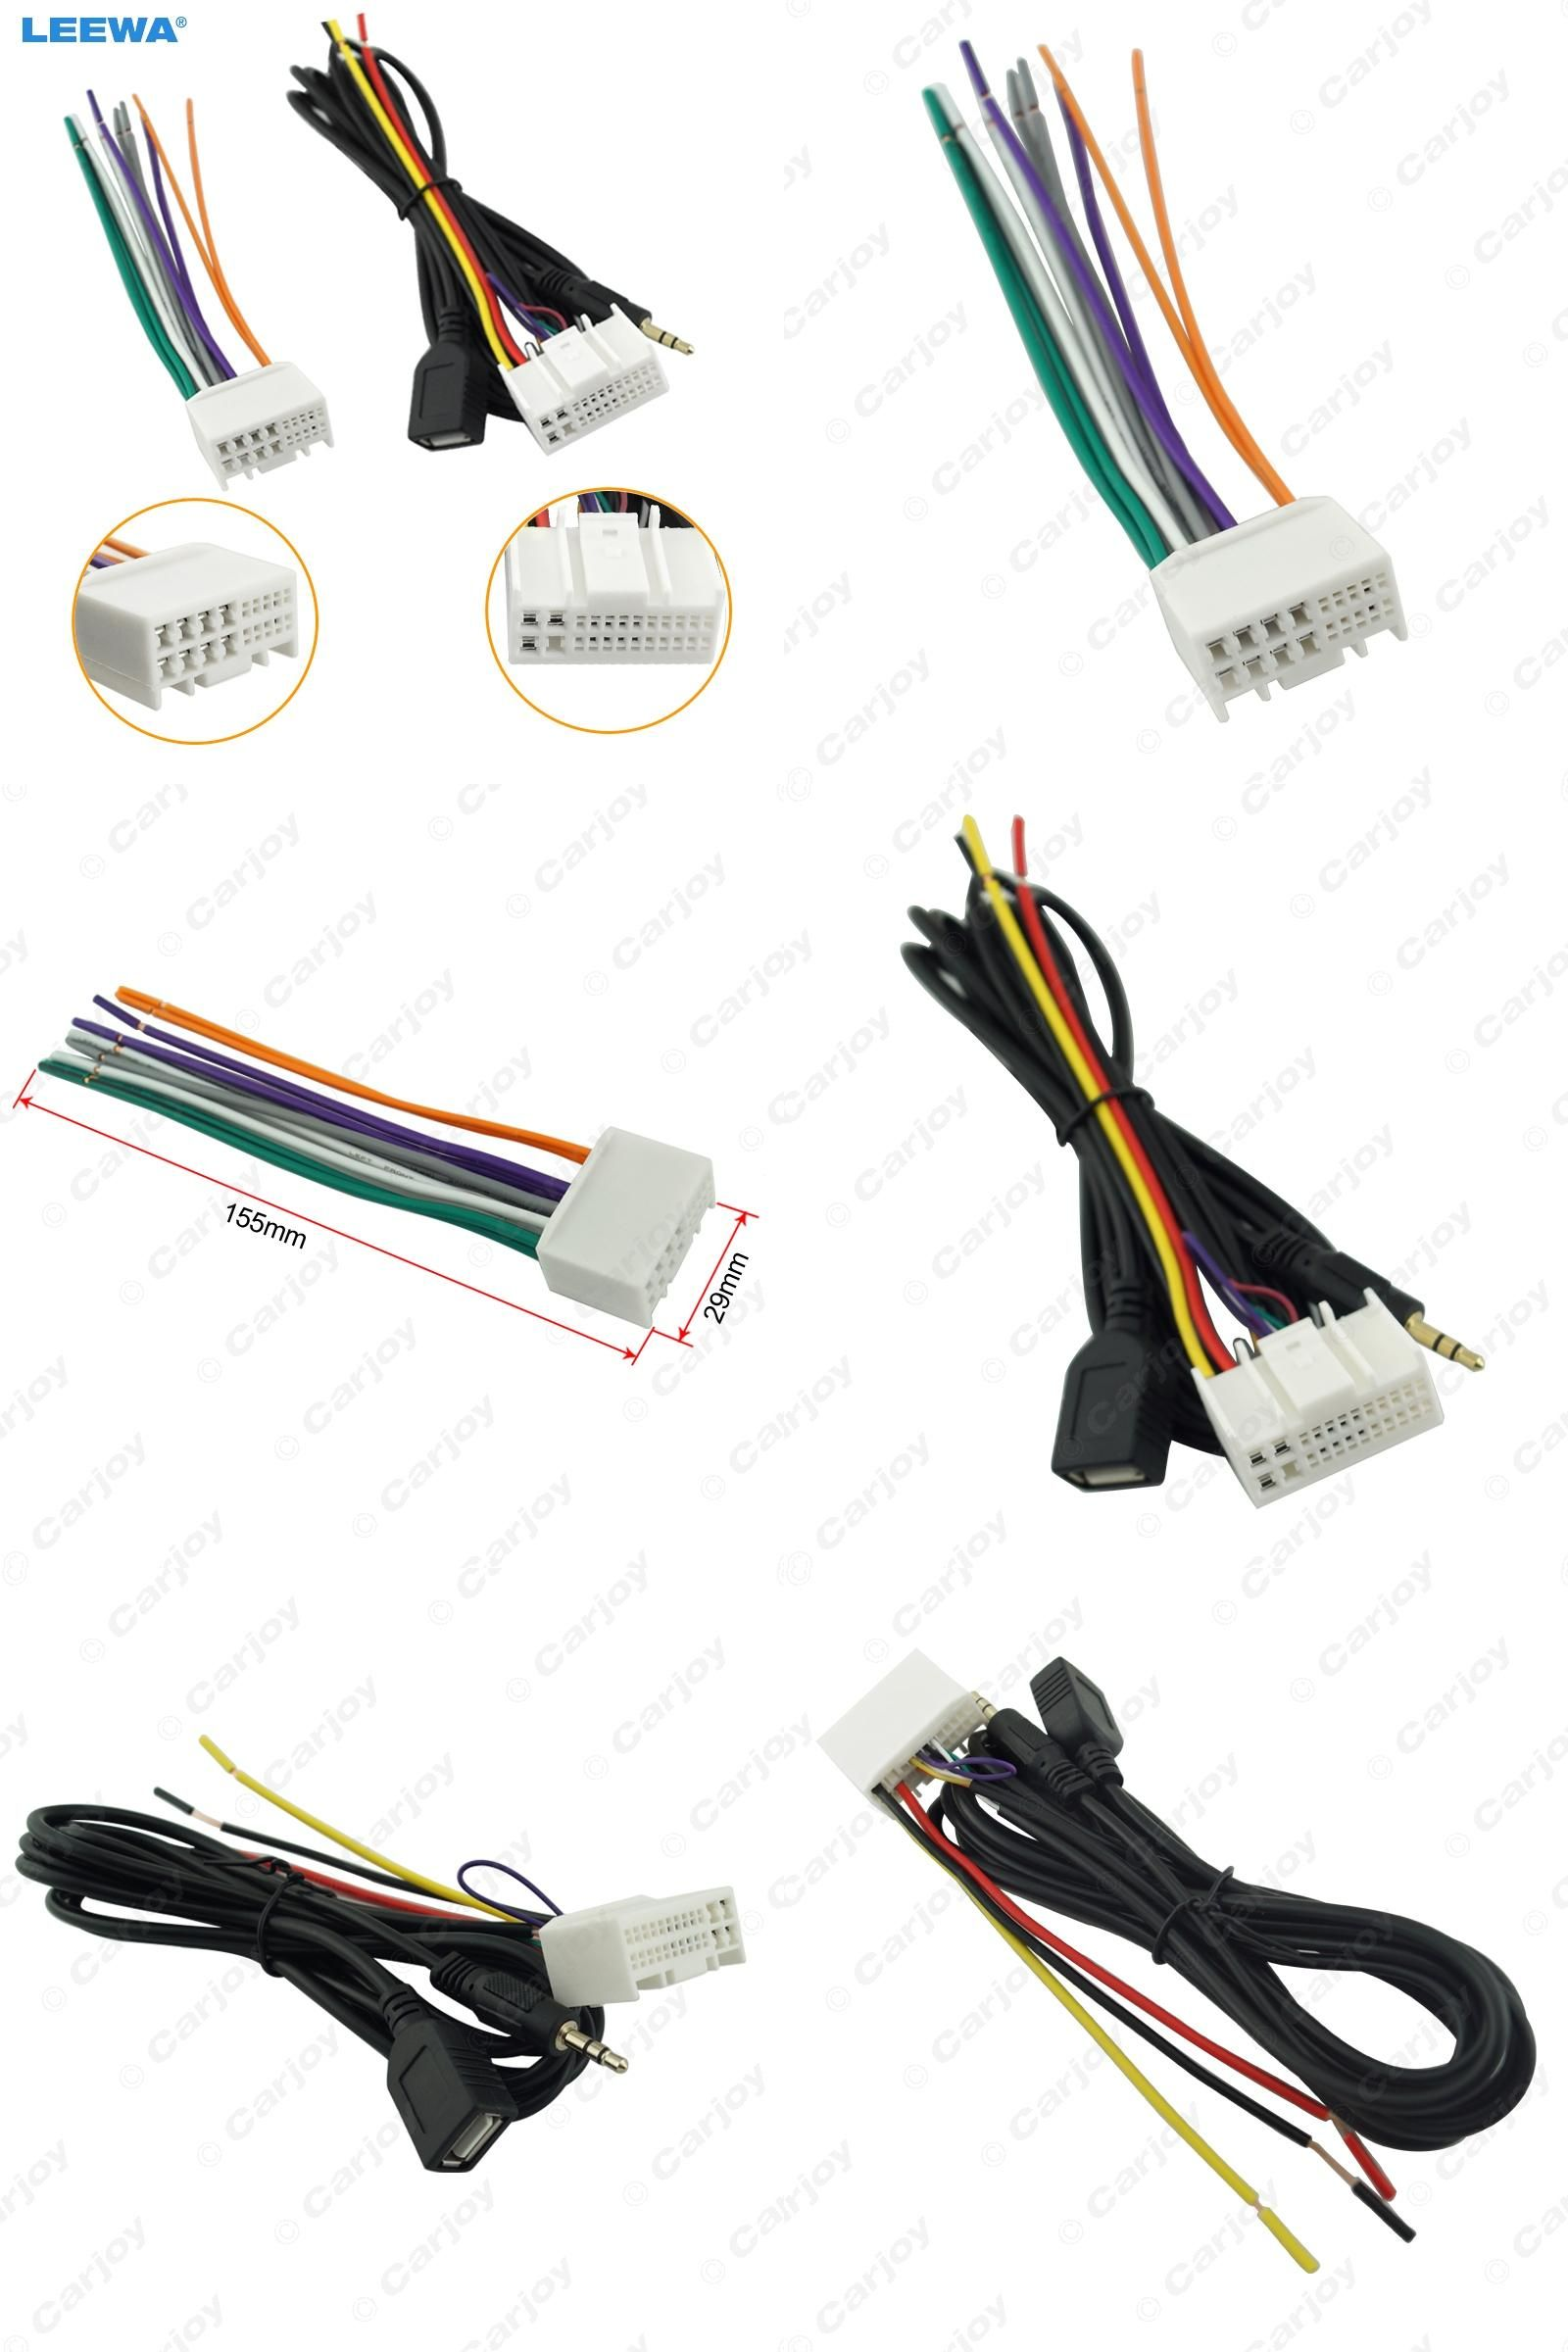 65bba15fb3a8d9bc4f1b698bf8827601 visit to buy] car audio cd stereo wiring harness adapter with usb car audio harness wire gauge at crackthecode.co